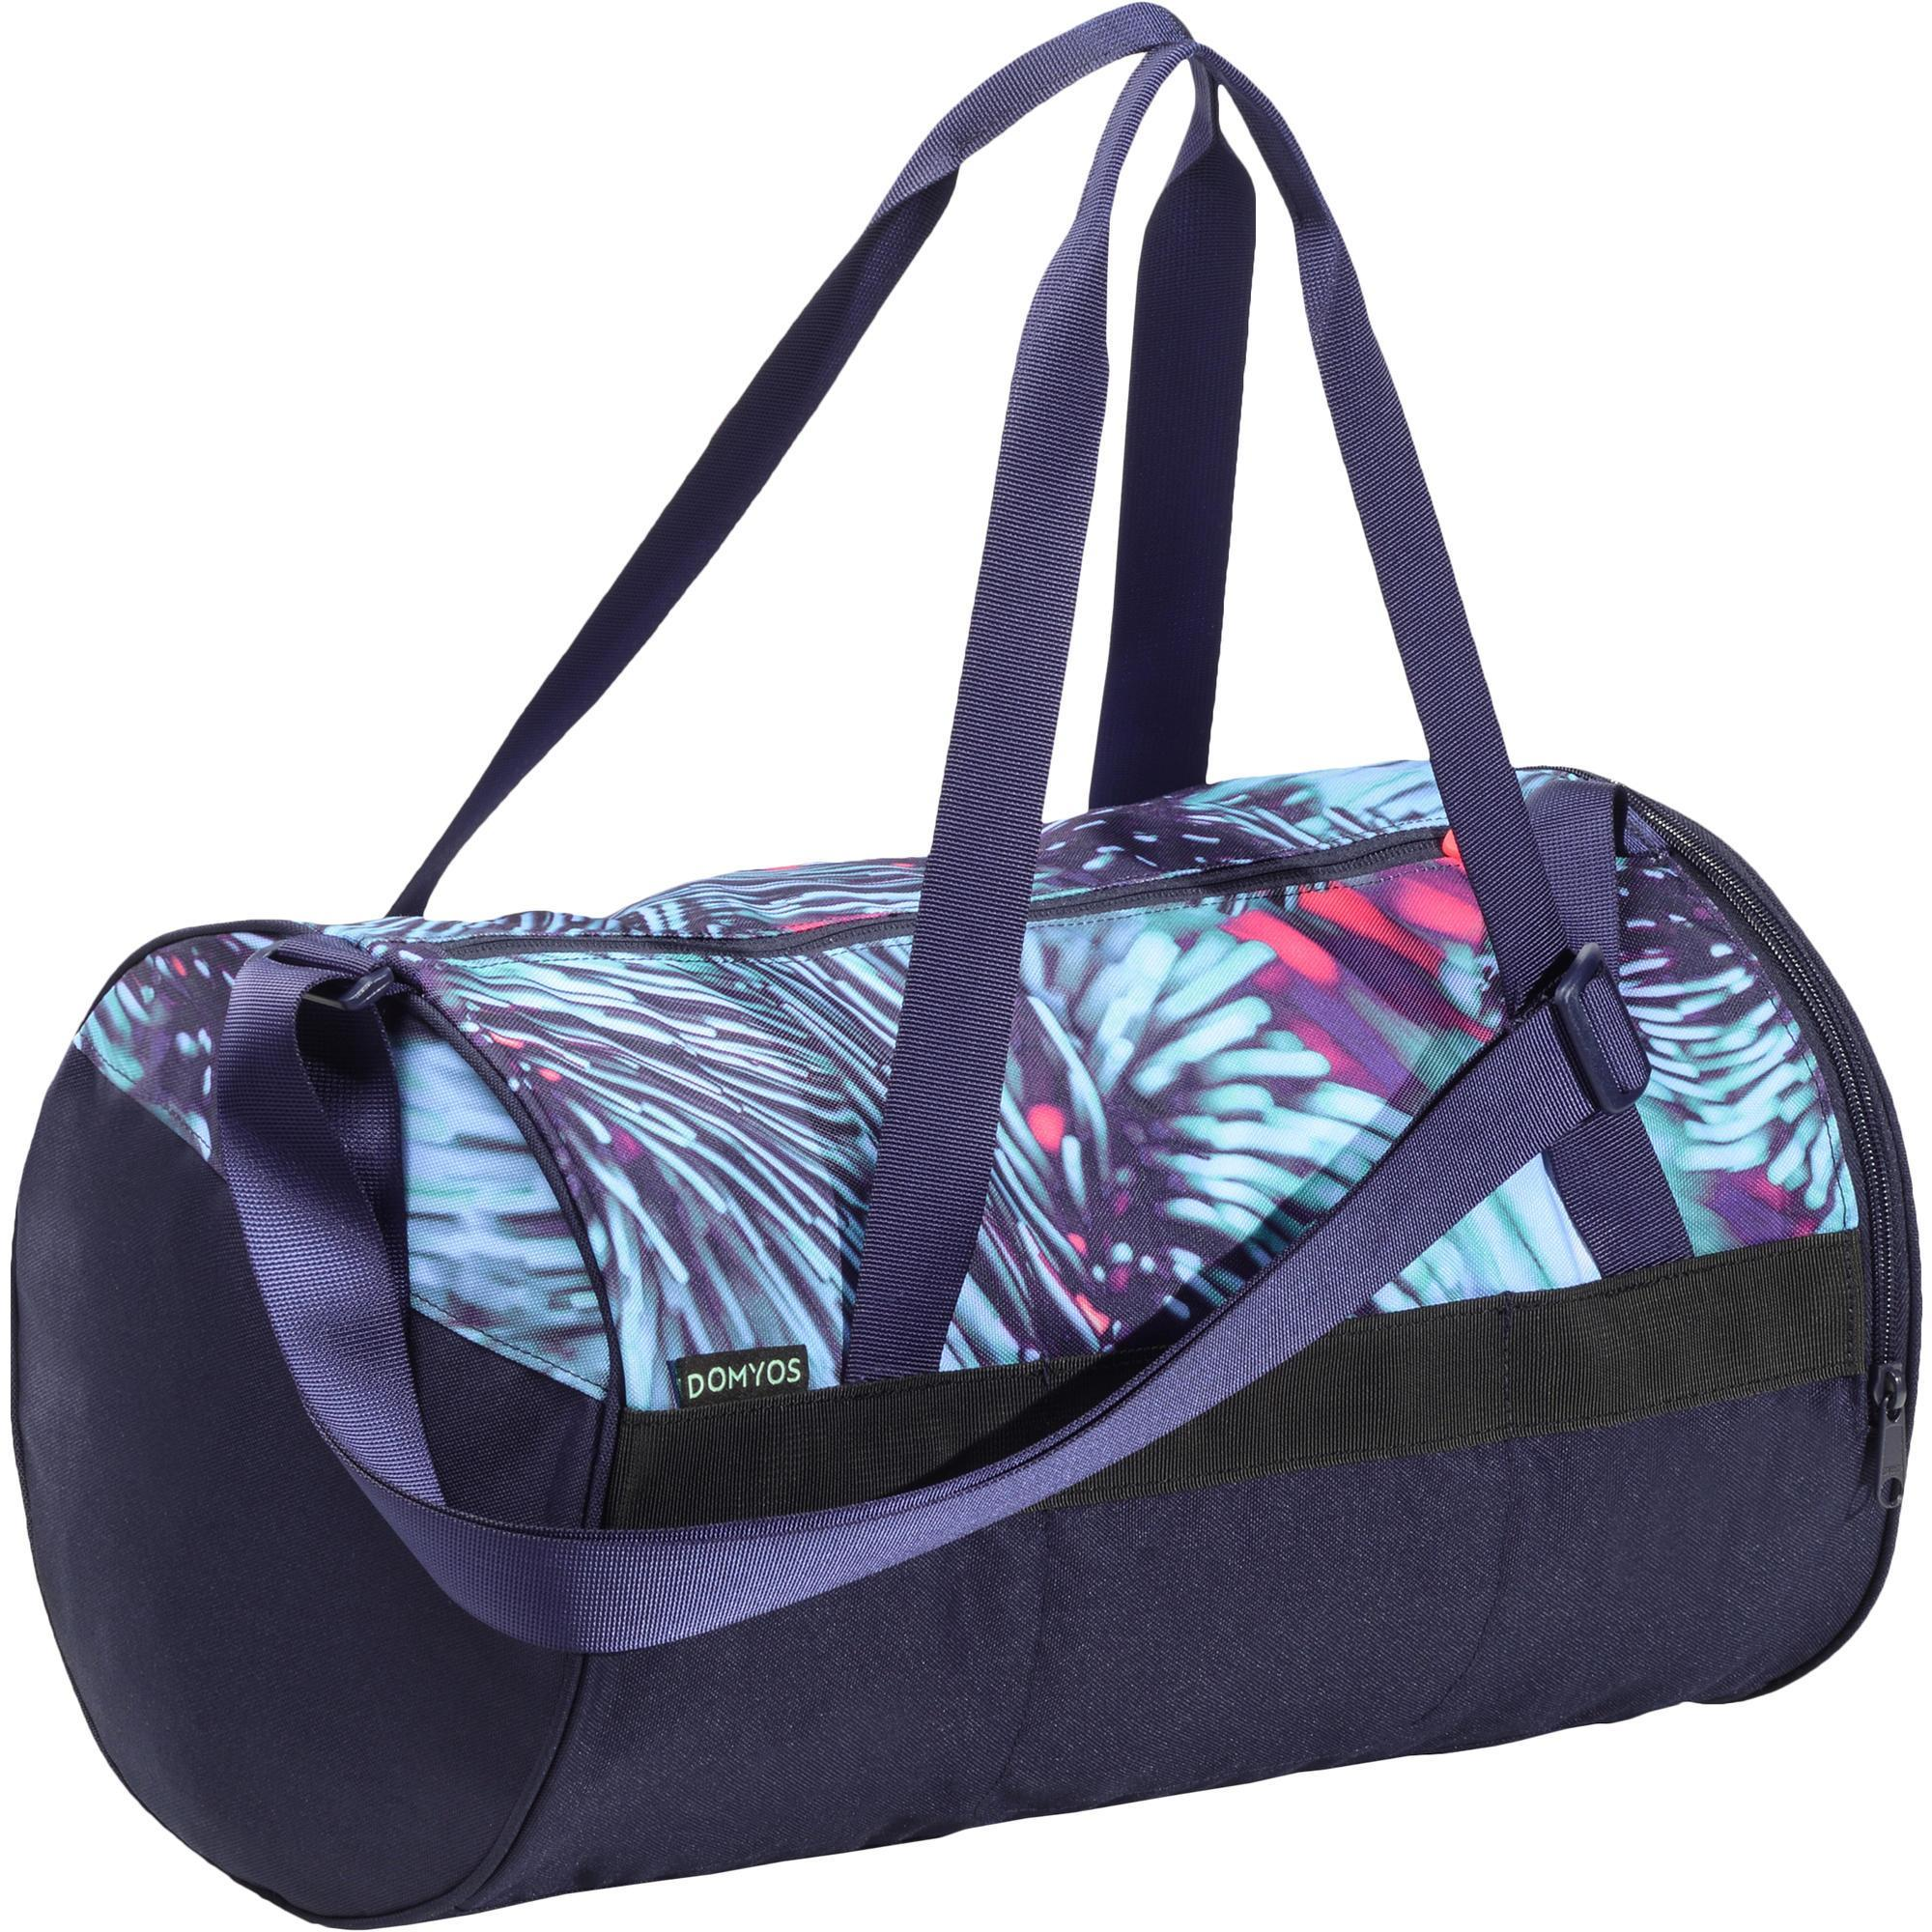 Bags 20L Fitness Bag - Pink Blue Green Print Domyos - Decathlon 03fa10efaeabb